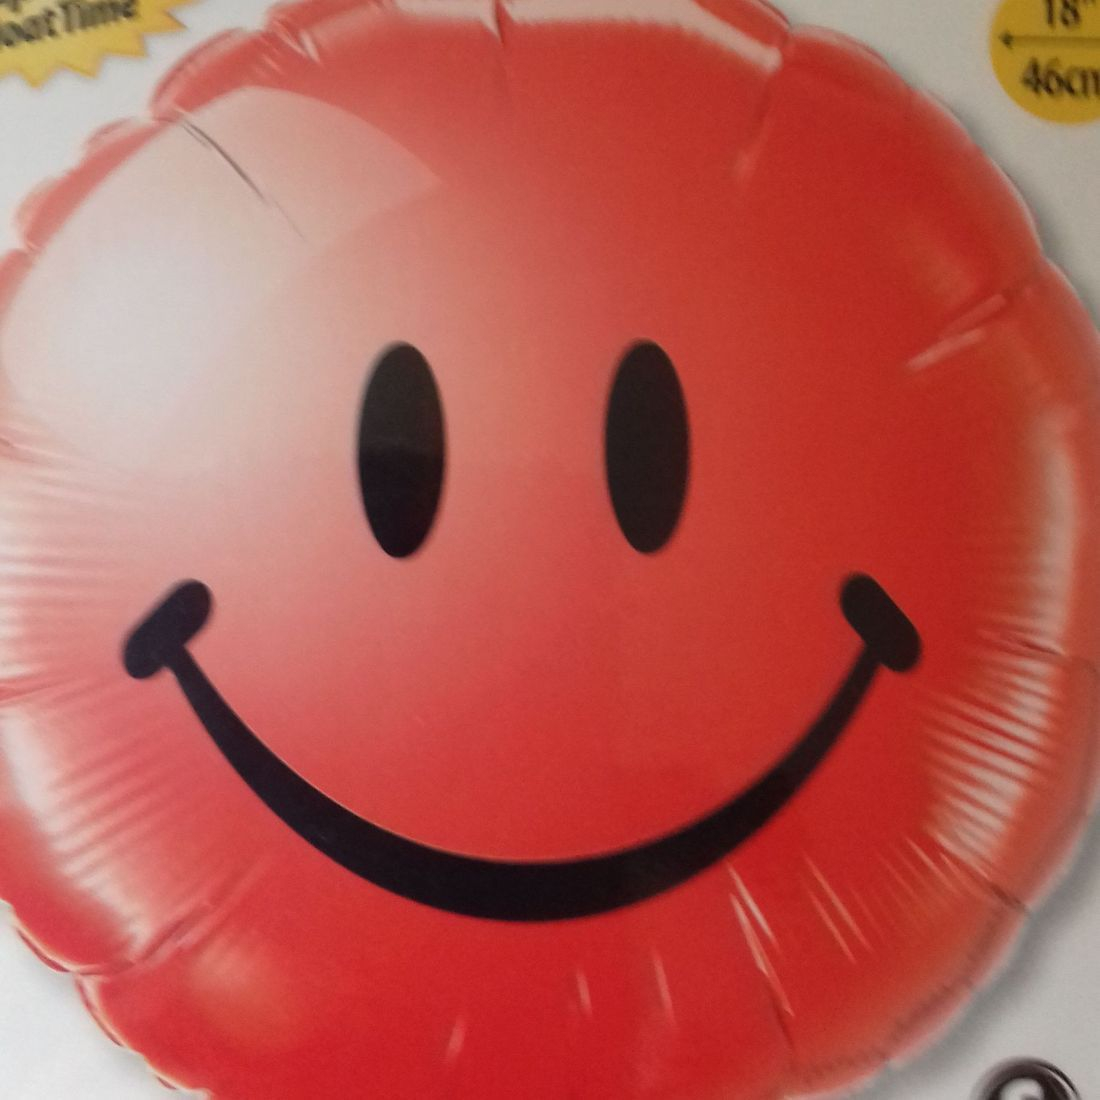 SMILEY RED